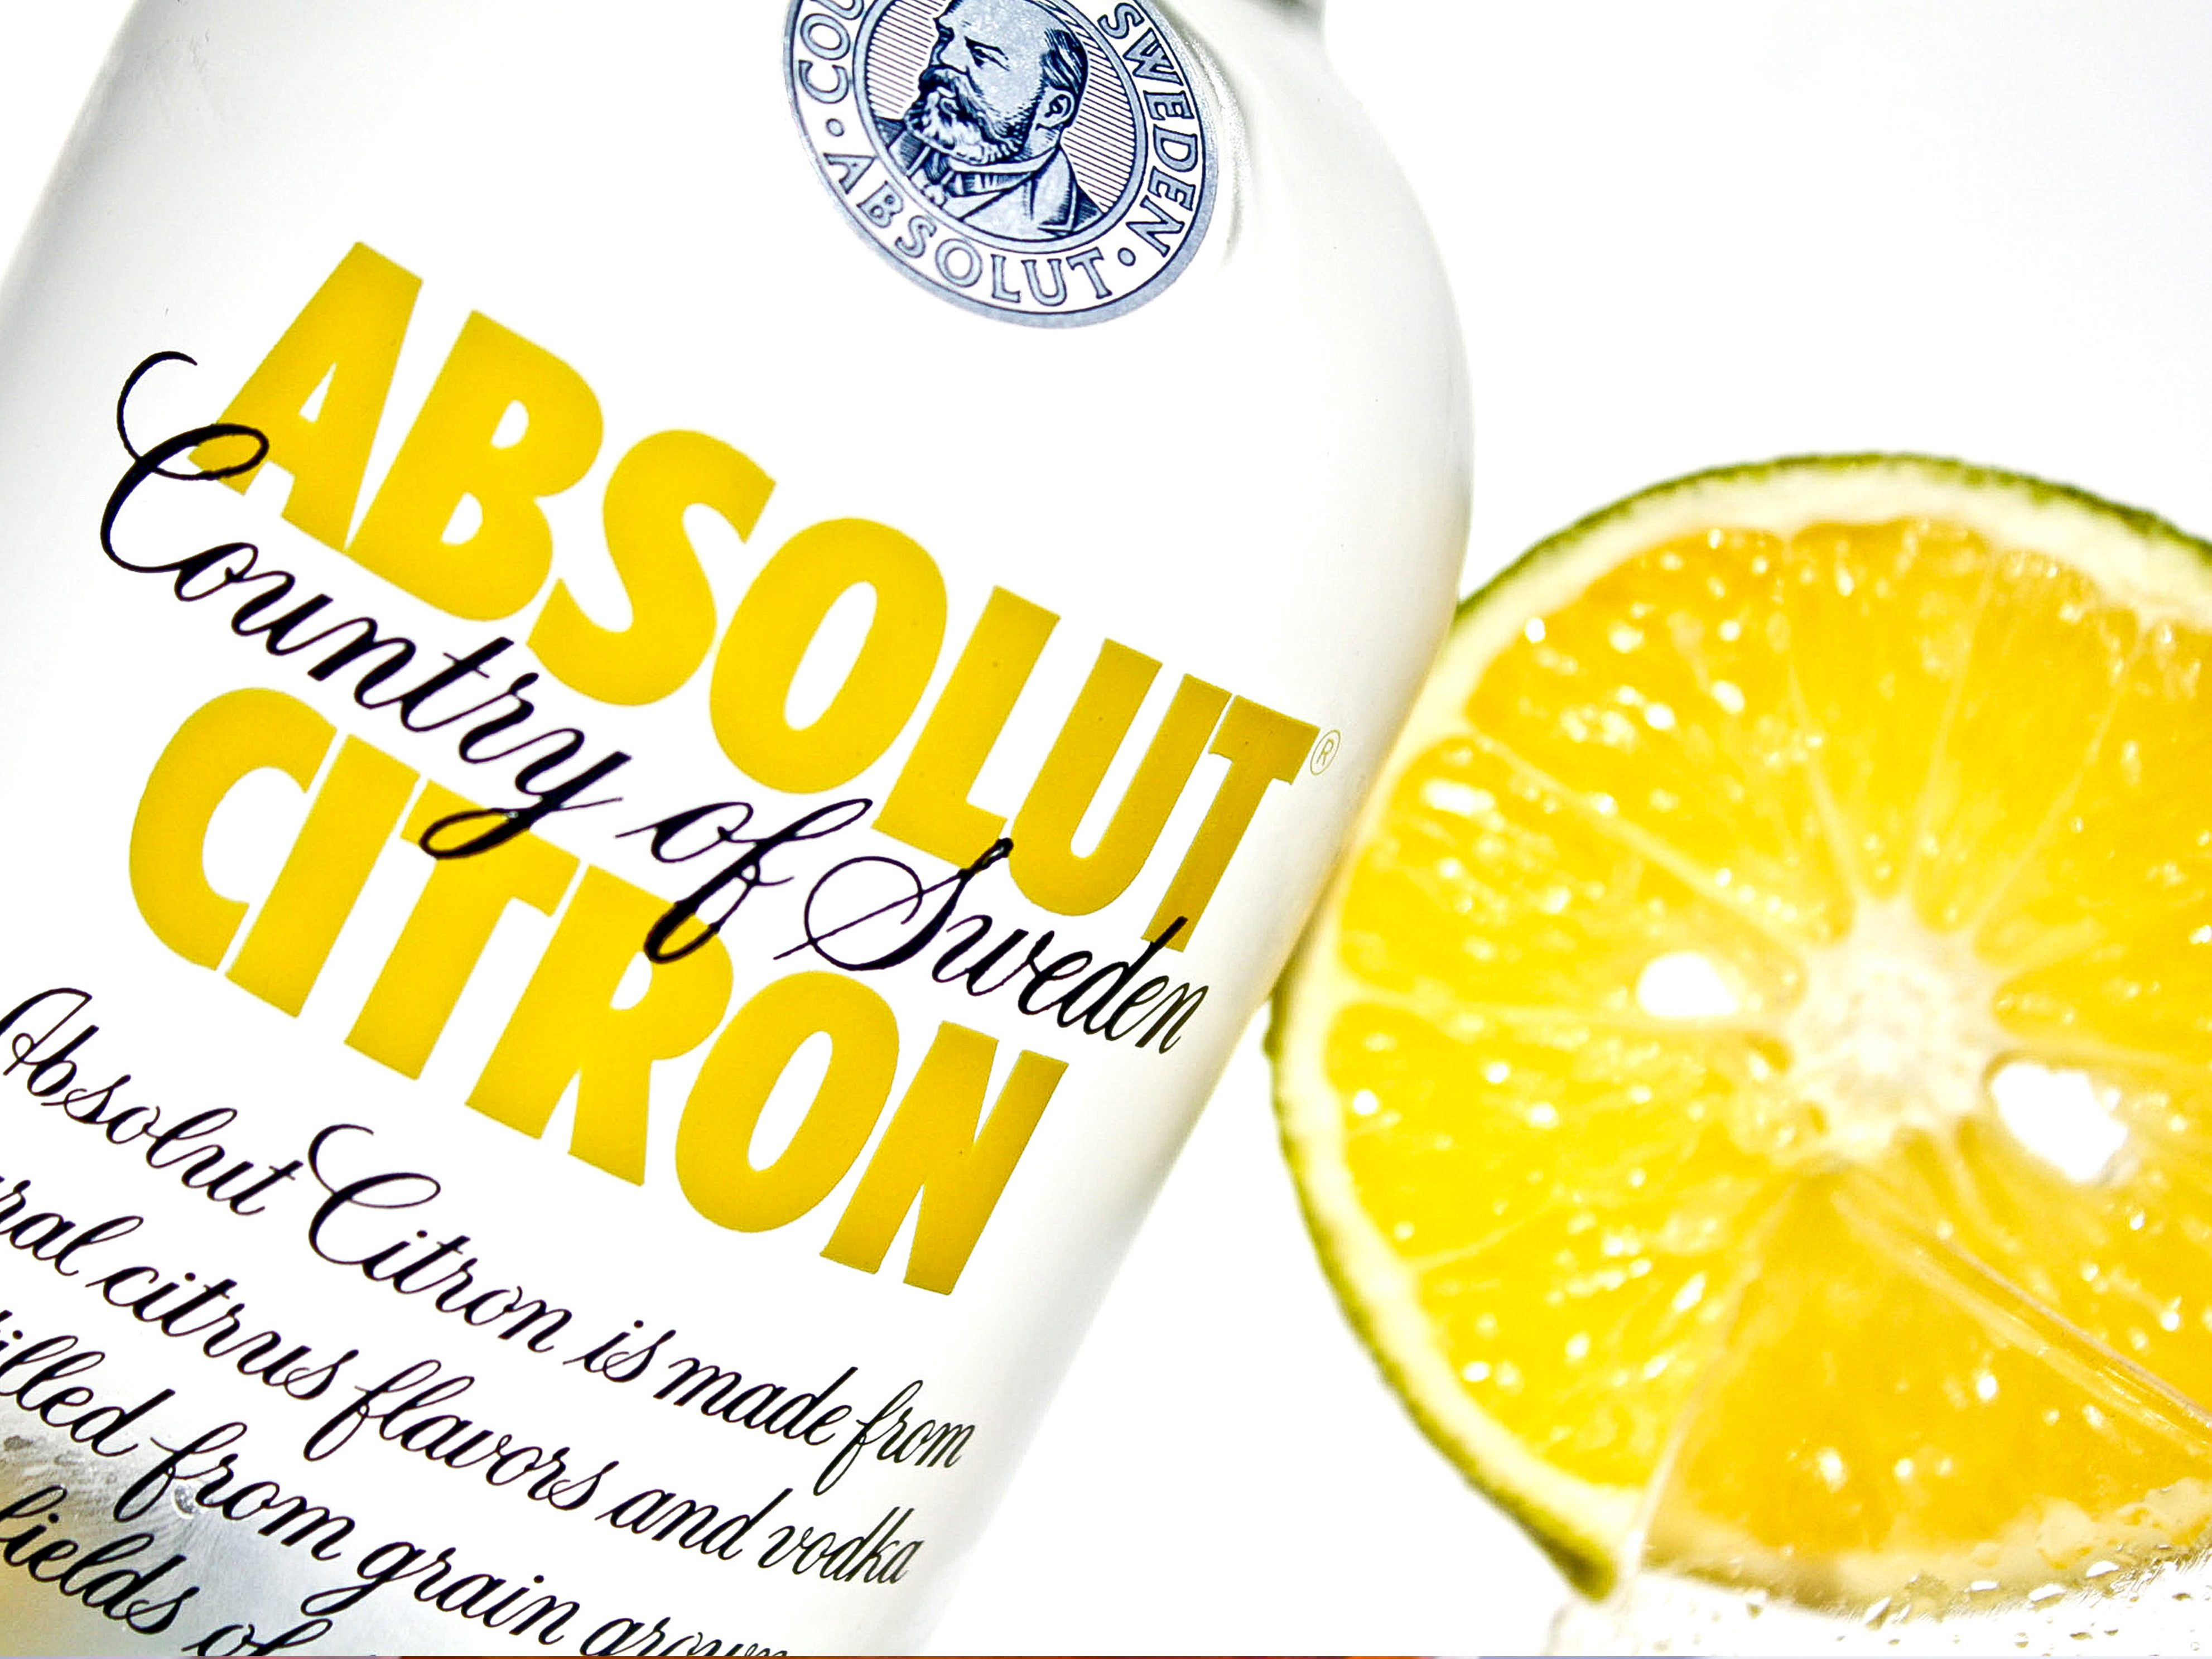 Absolut Vodka product photography